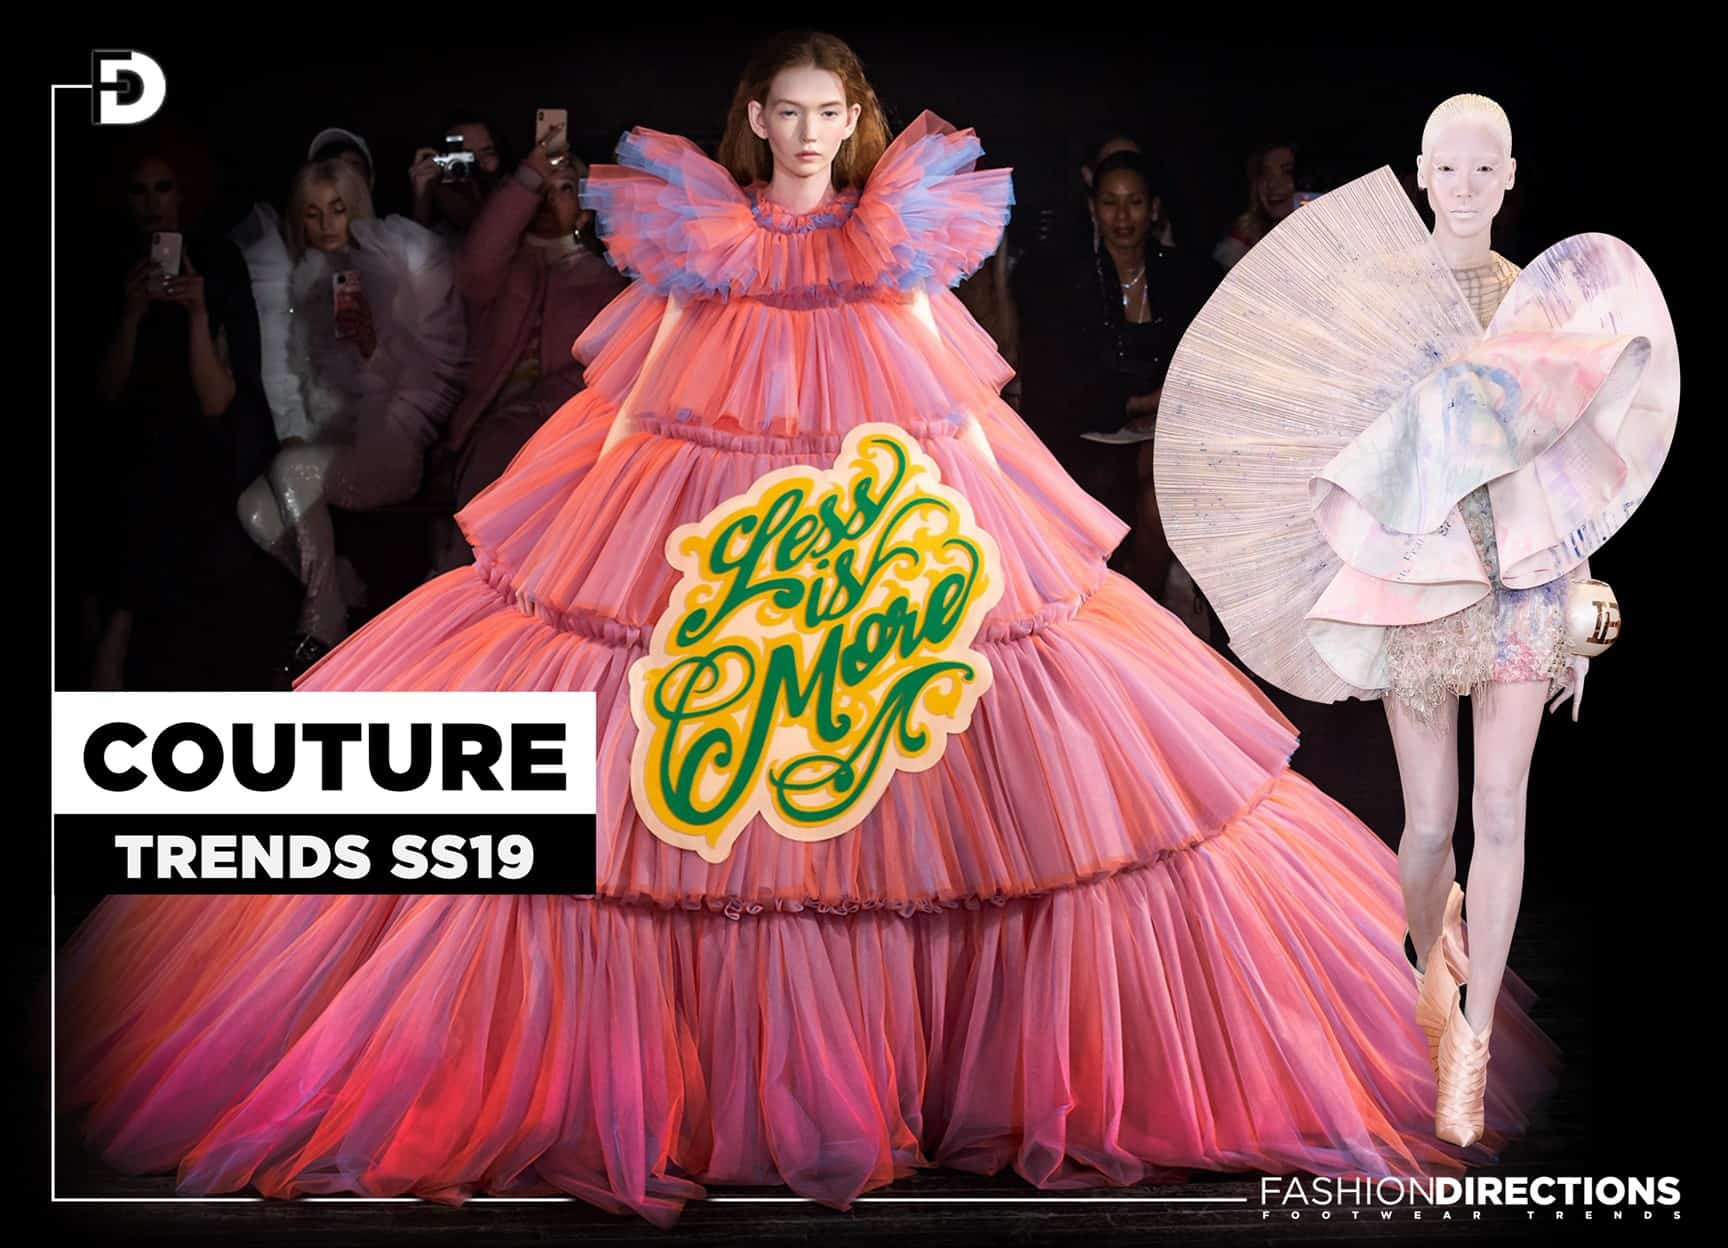 Haute Couture ss19 trends 1